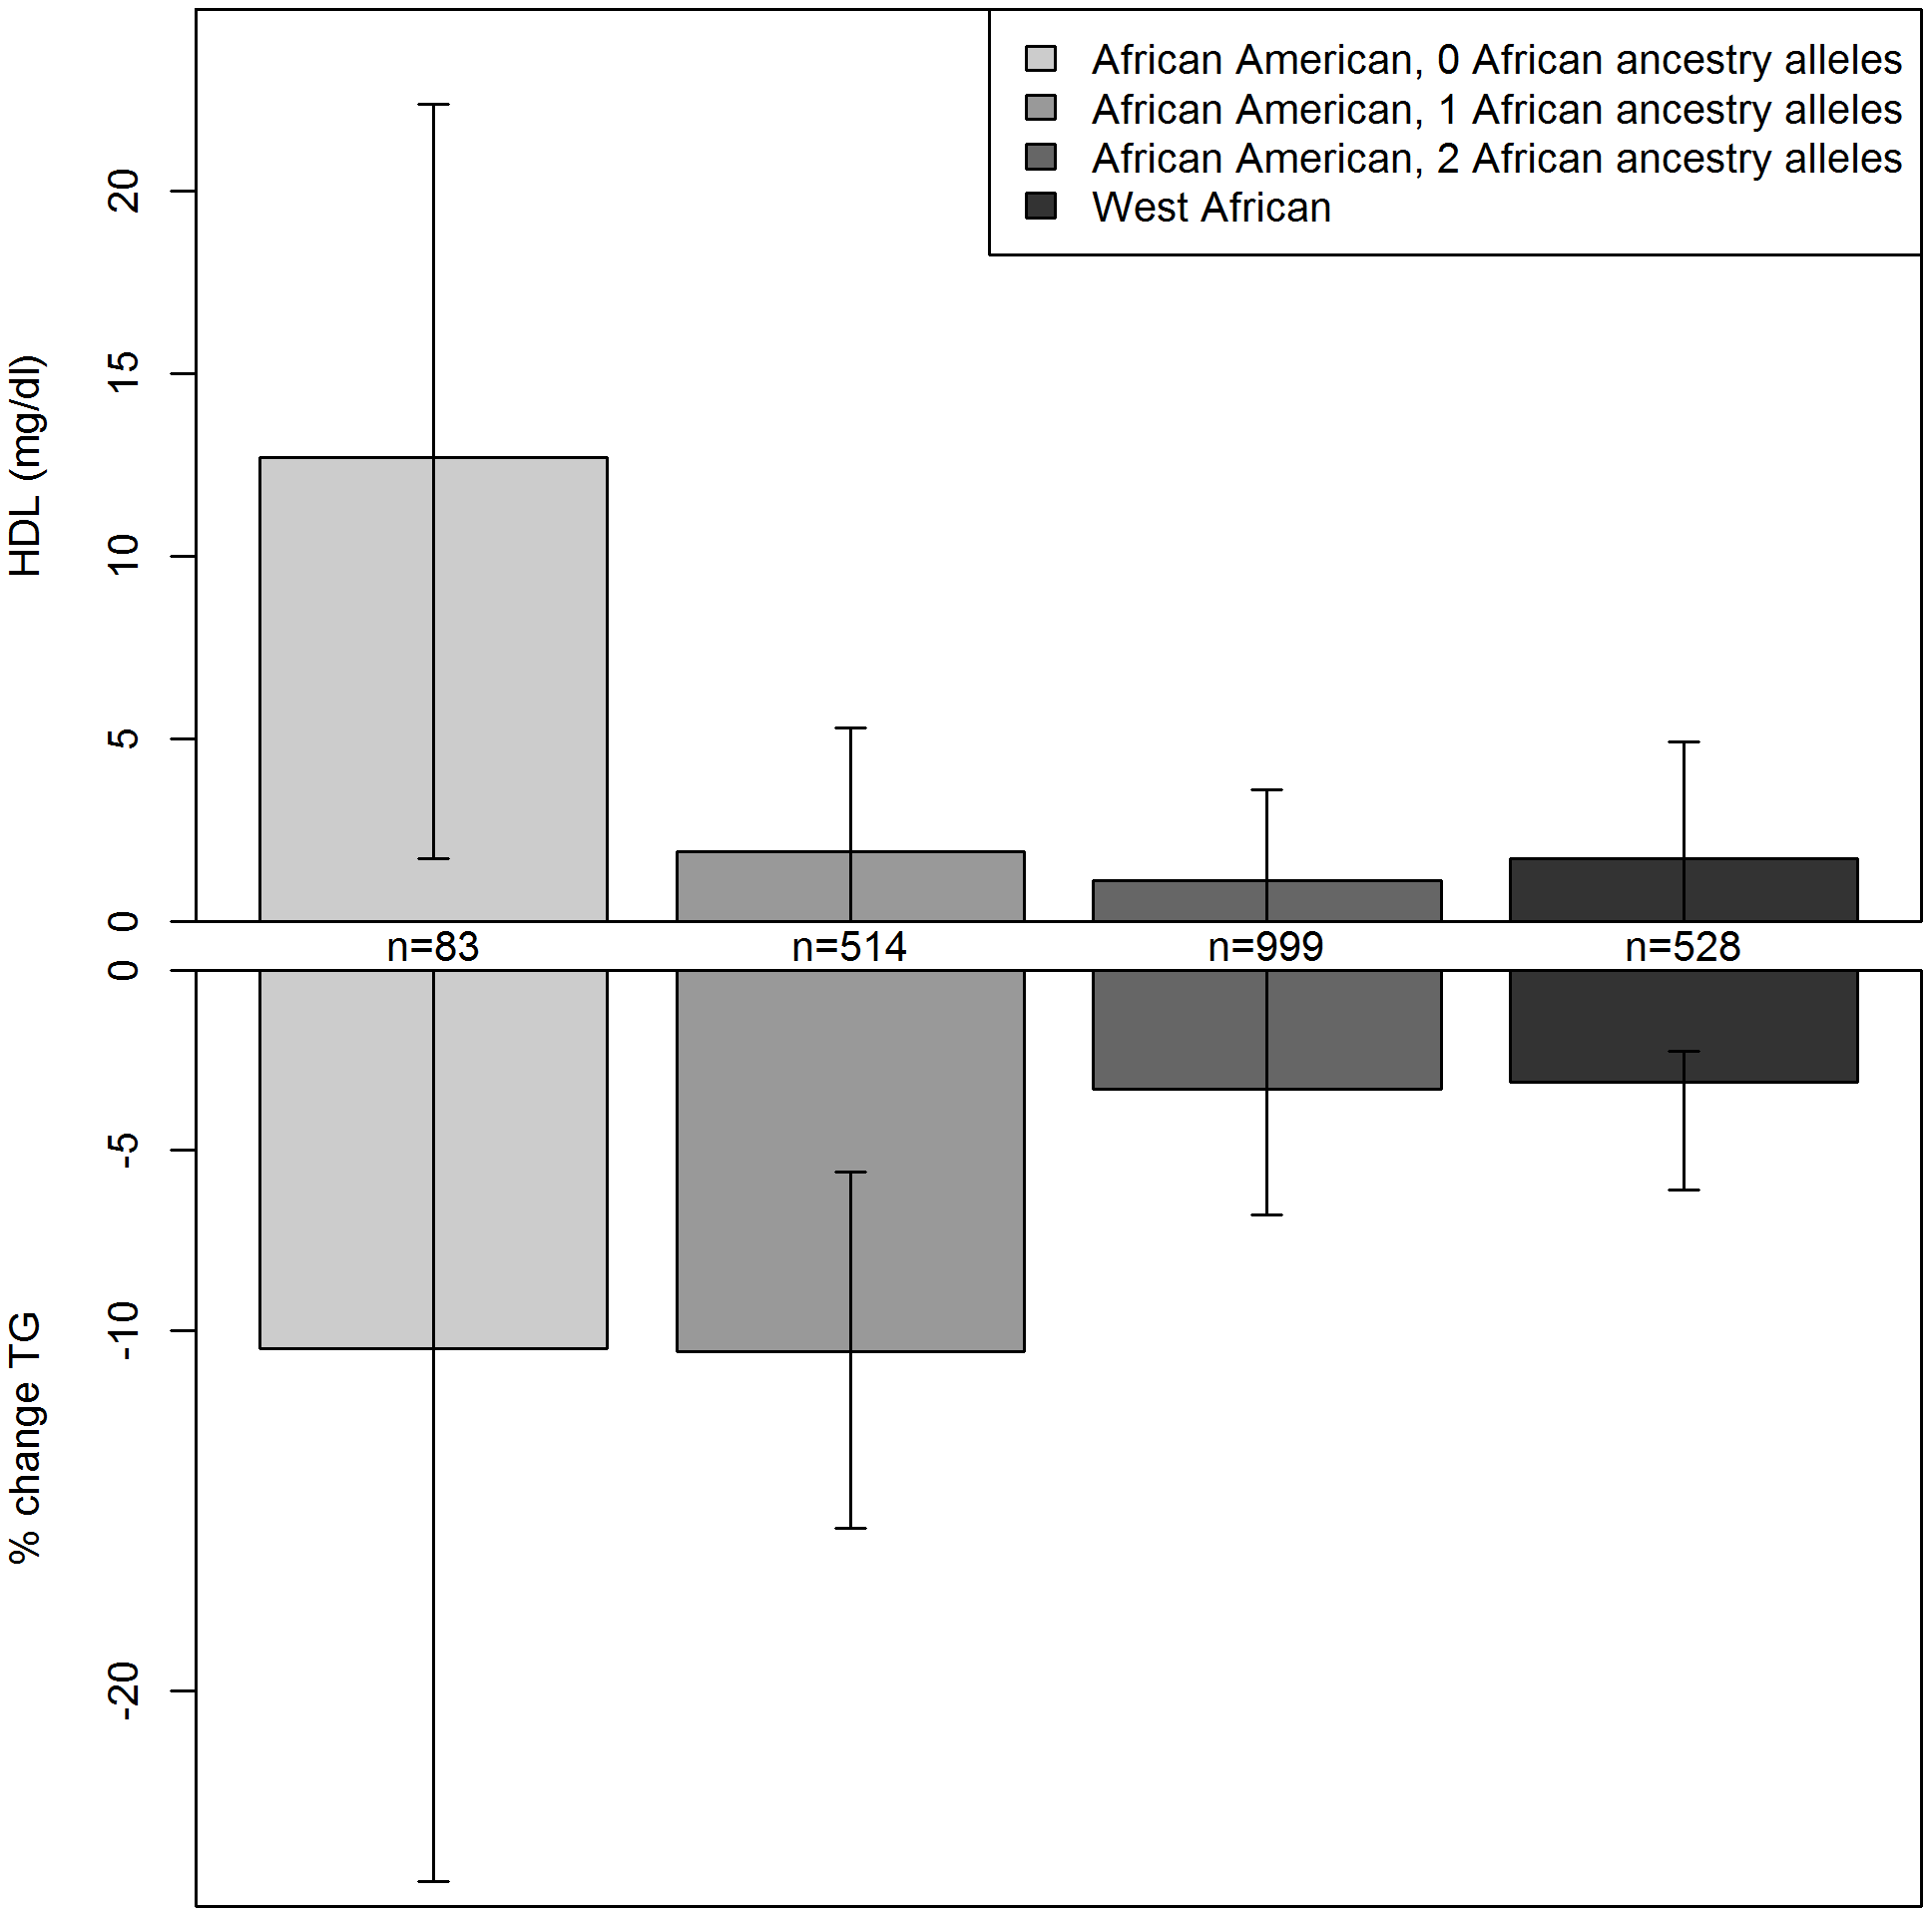 Serum lipids by rs328 genotype and local ancestry in African Americans and West Africans.